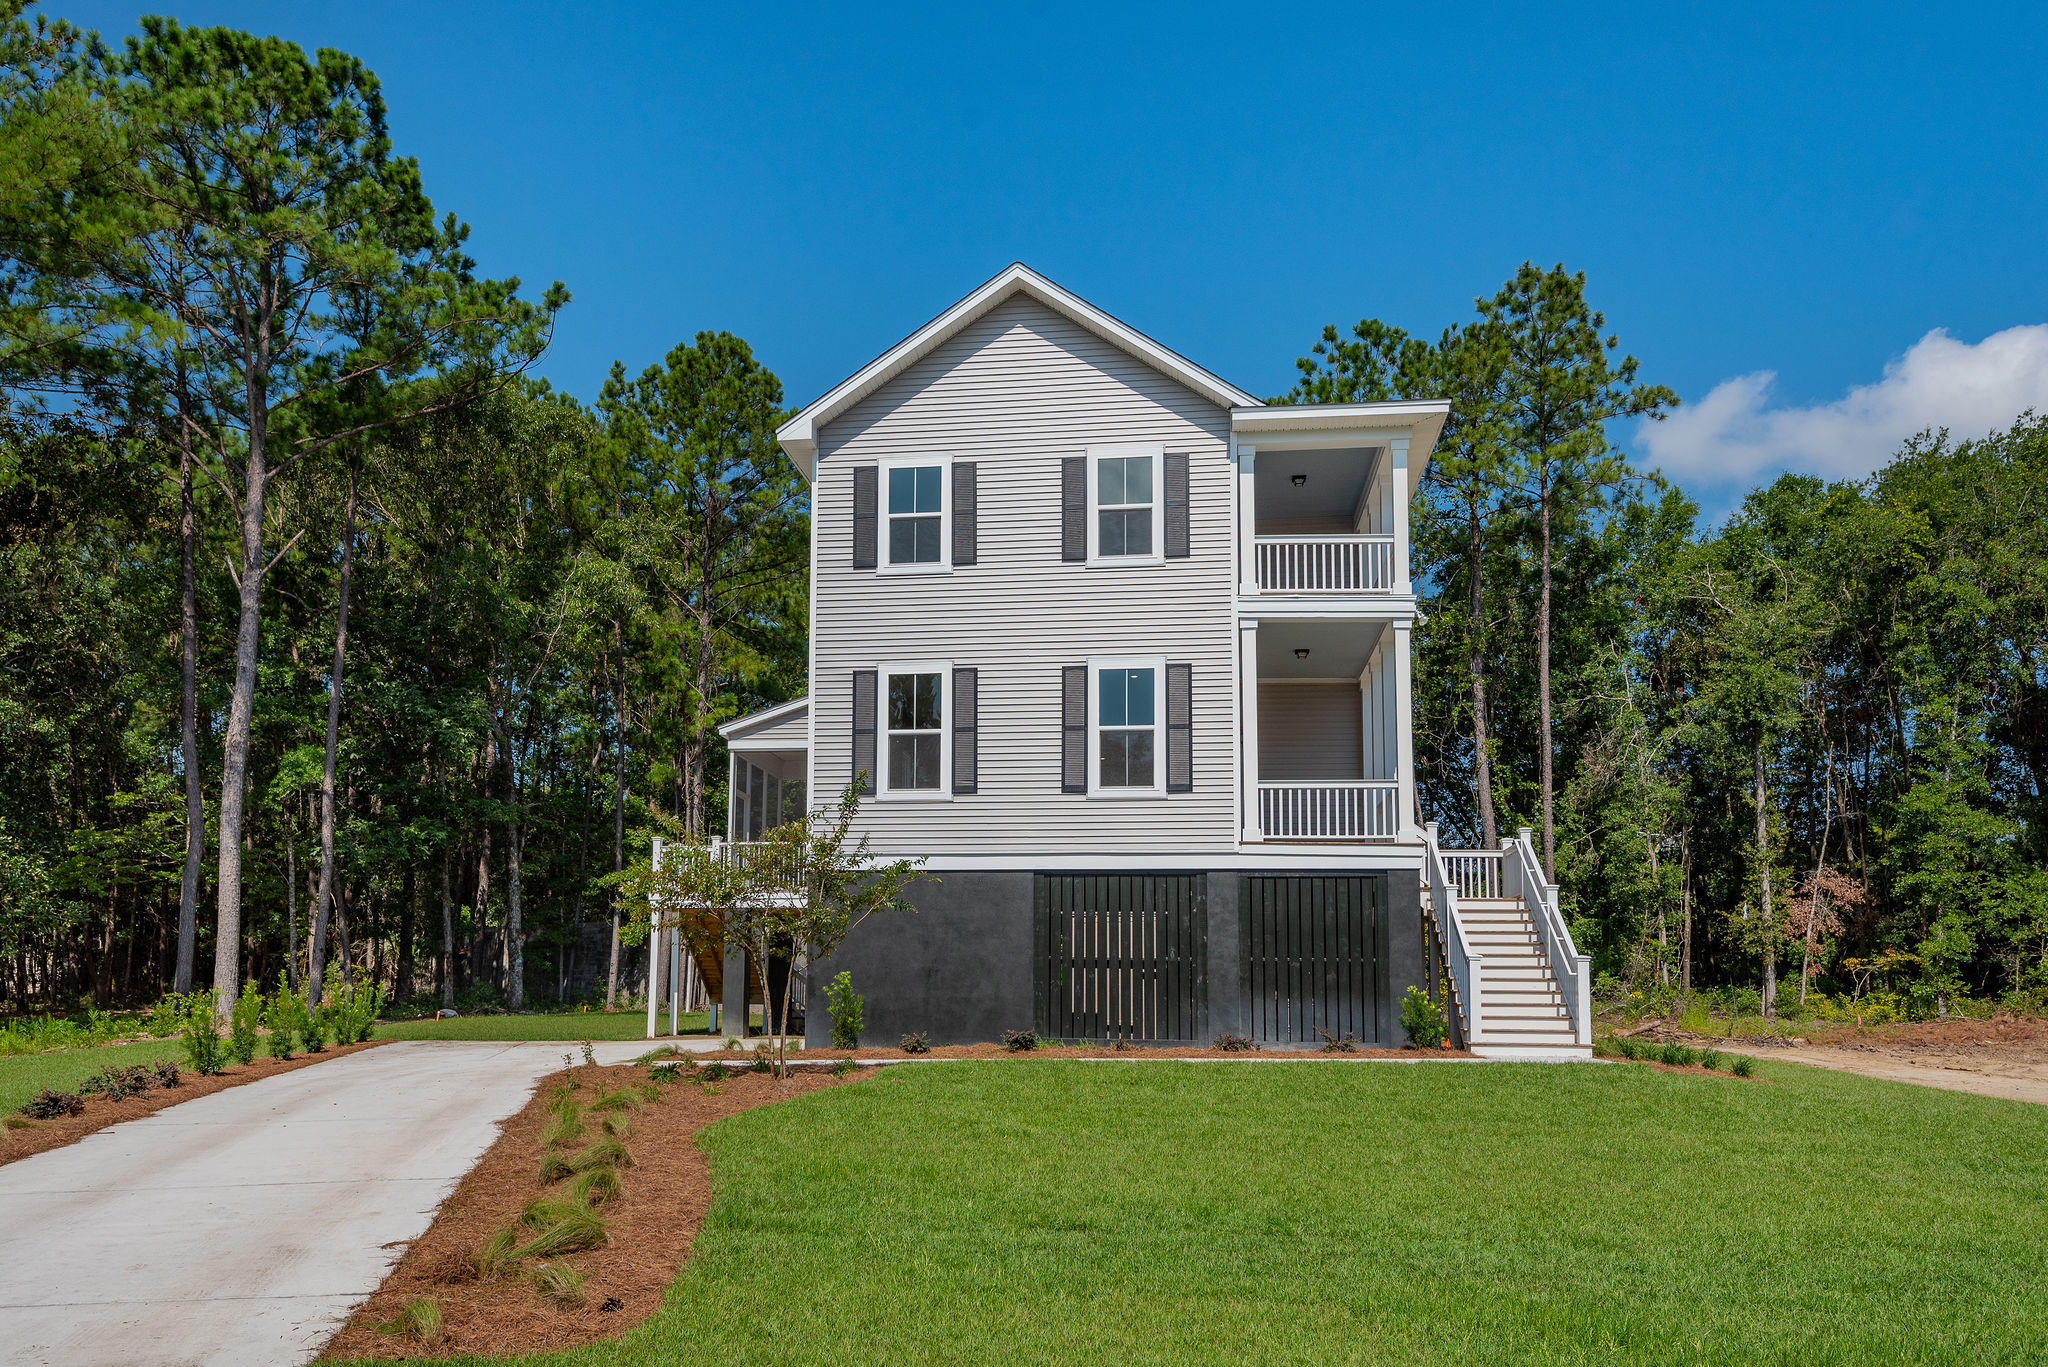 The Cove at Martins Creek Homes For Sale - 117 Martins Point, Wando, SC - 33